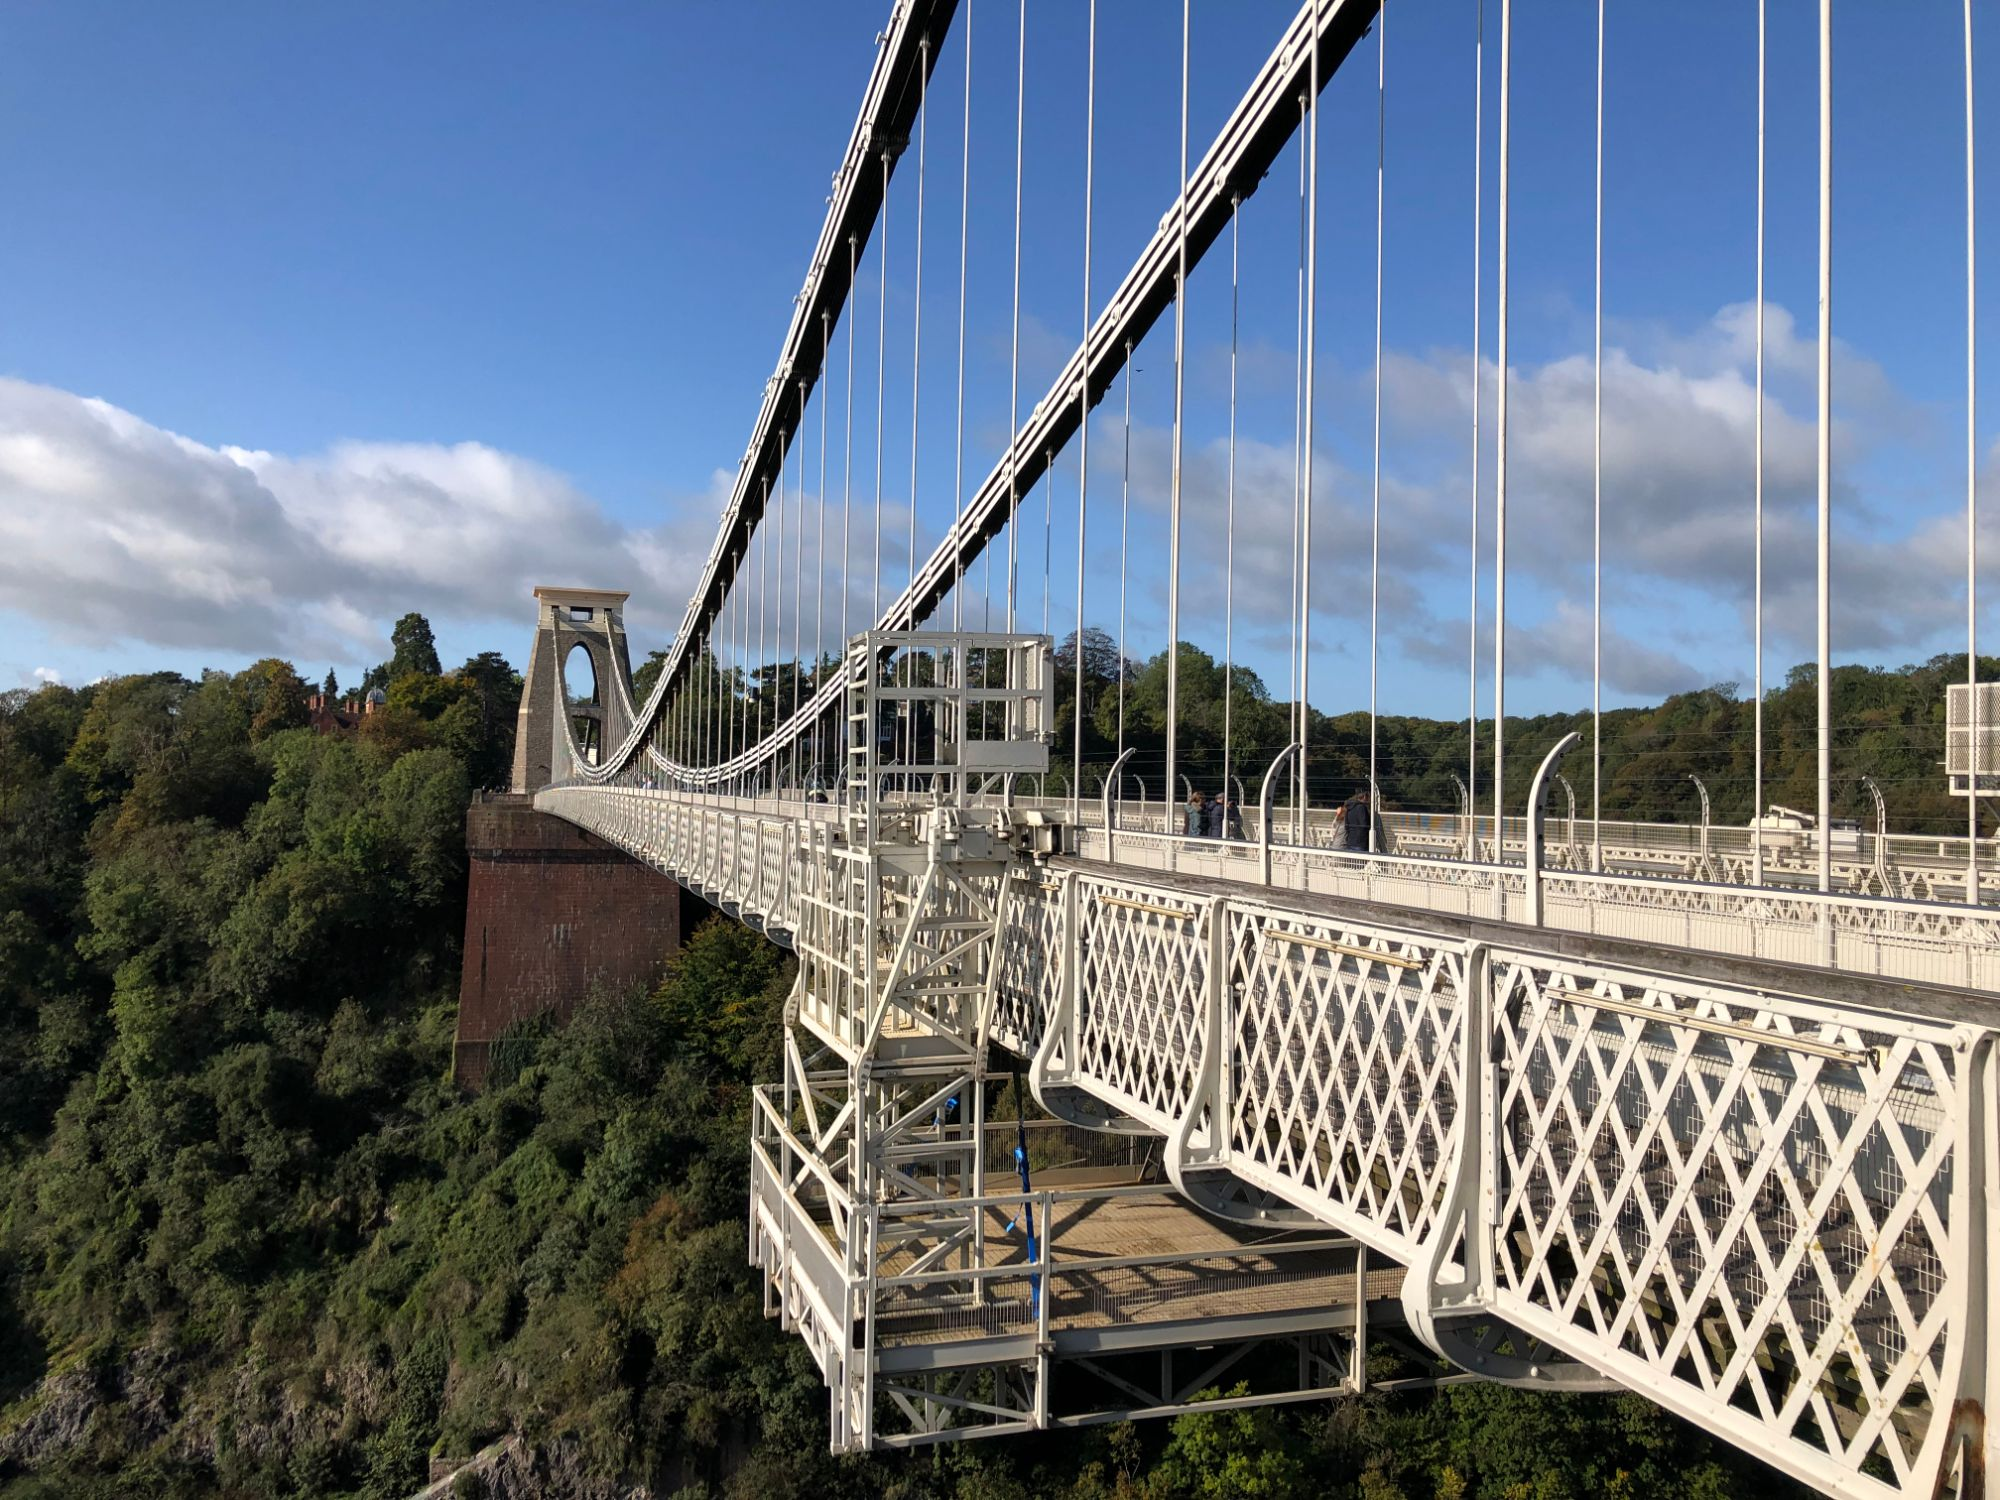 Free stock photo Clifton Suspension Bridge Bristol